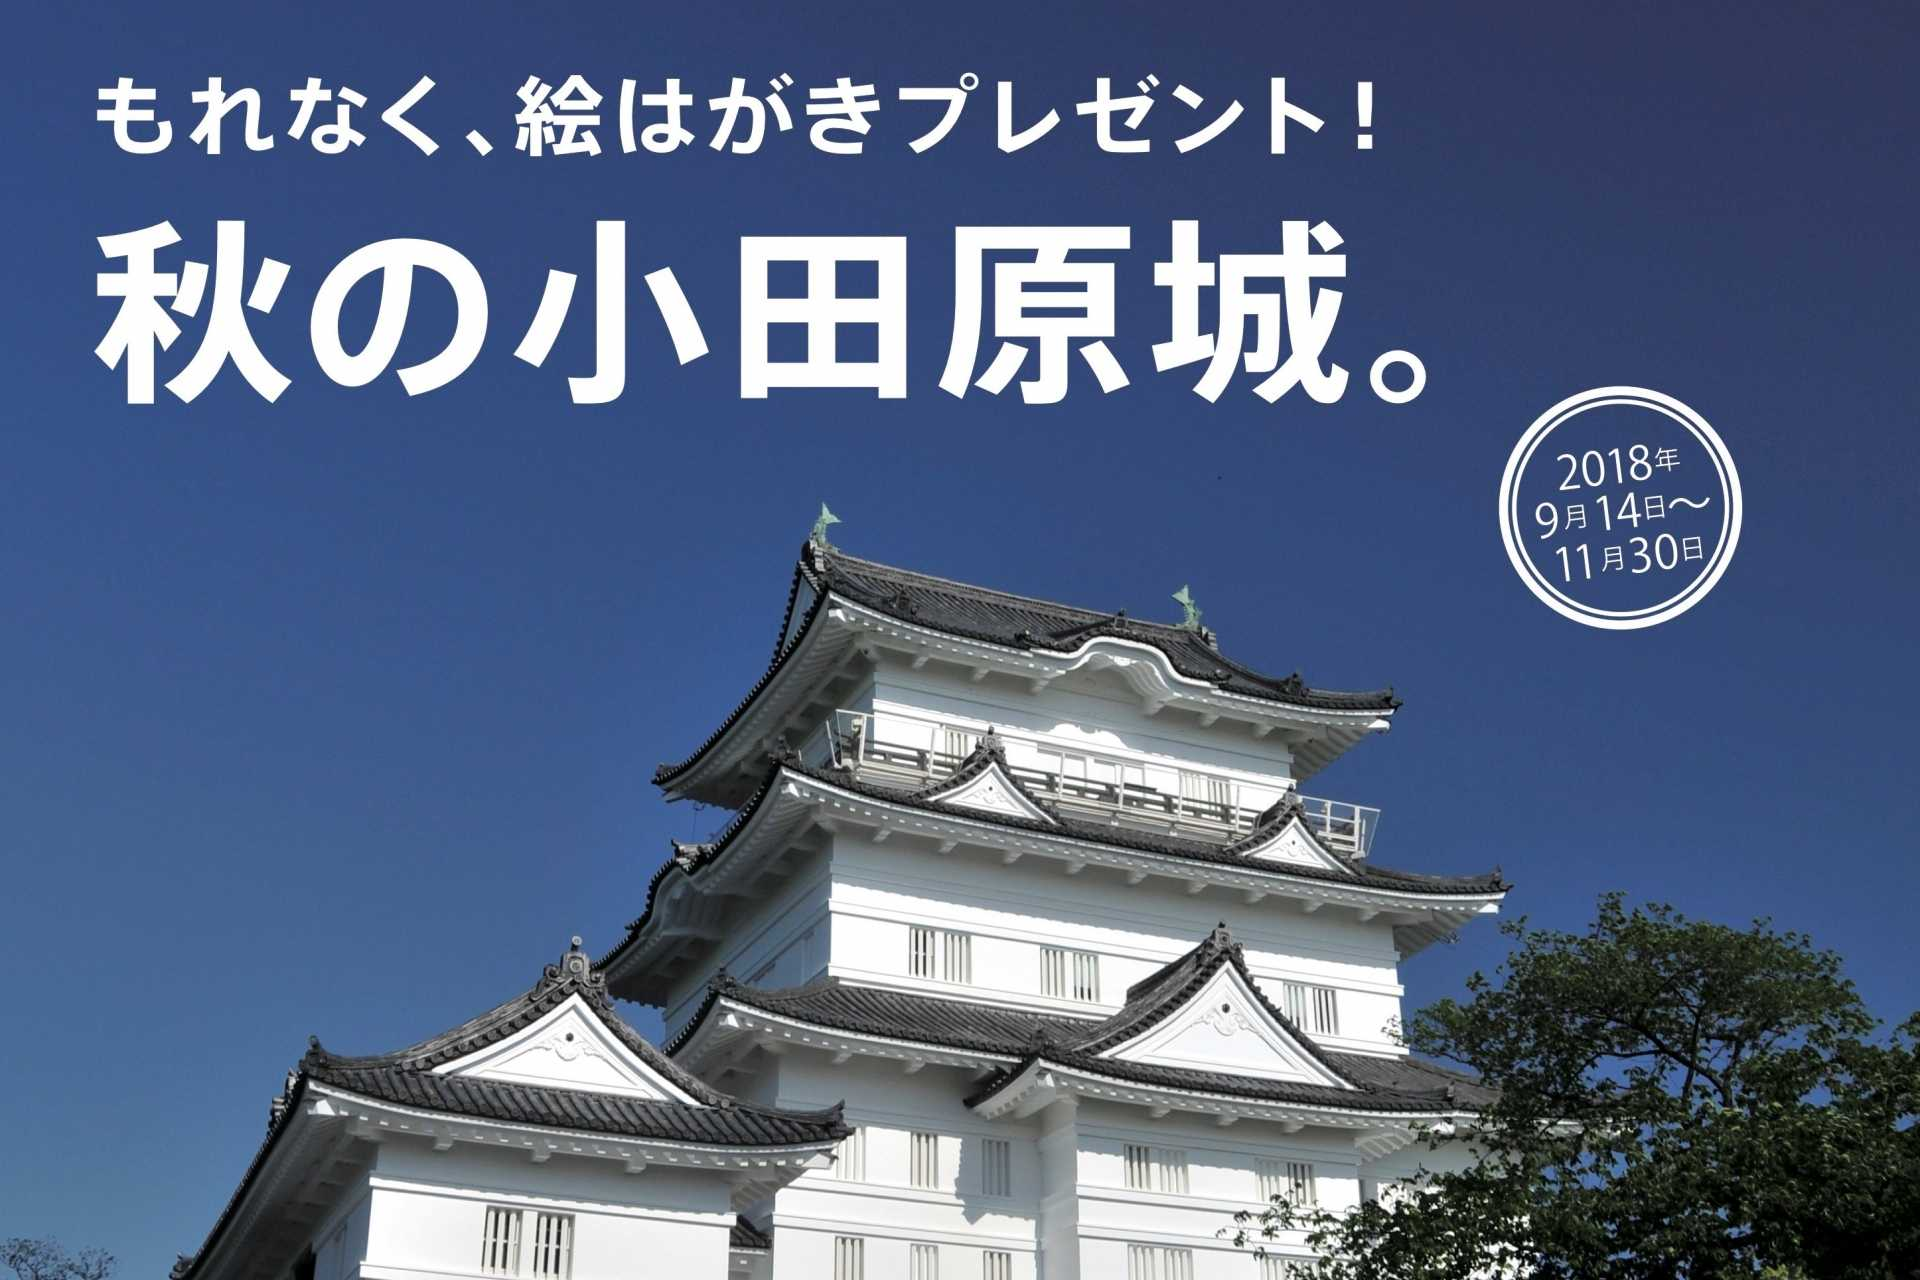 We present picture postcard without exception in Odawara-jo Castle! (outside site)